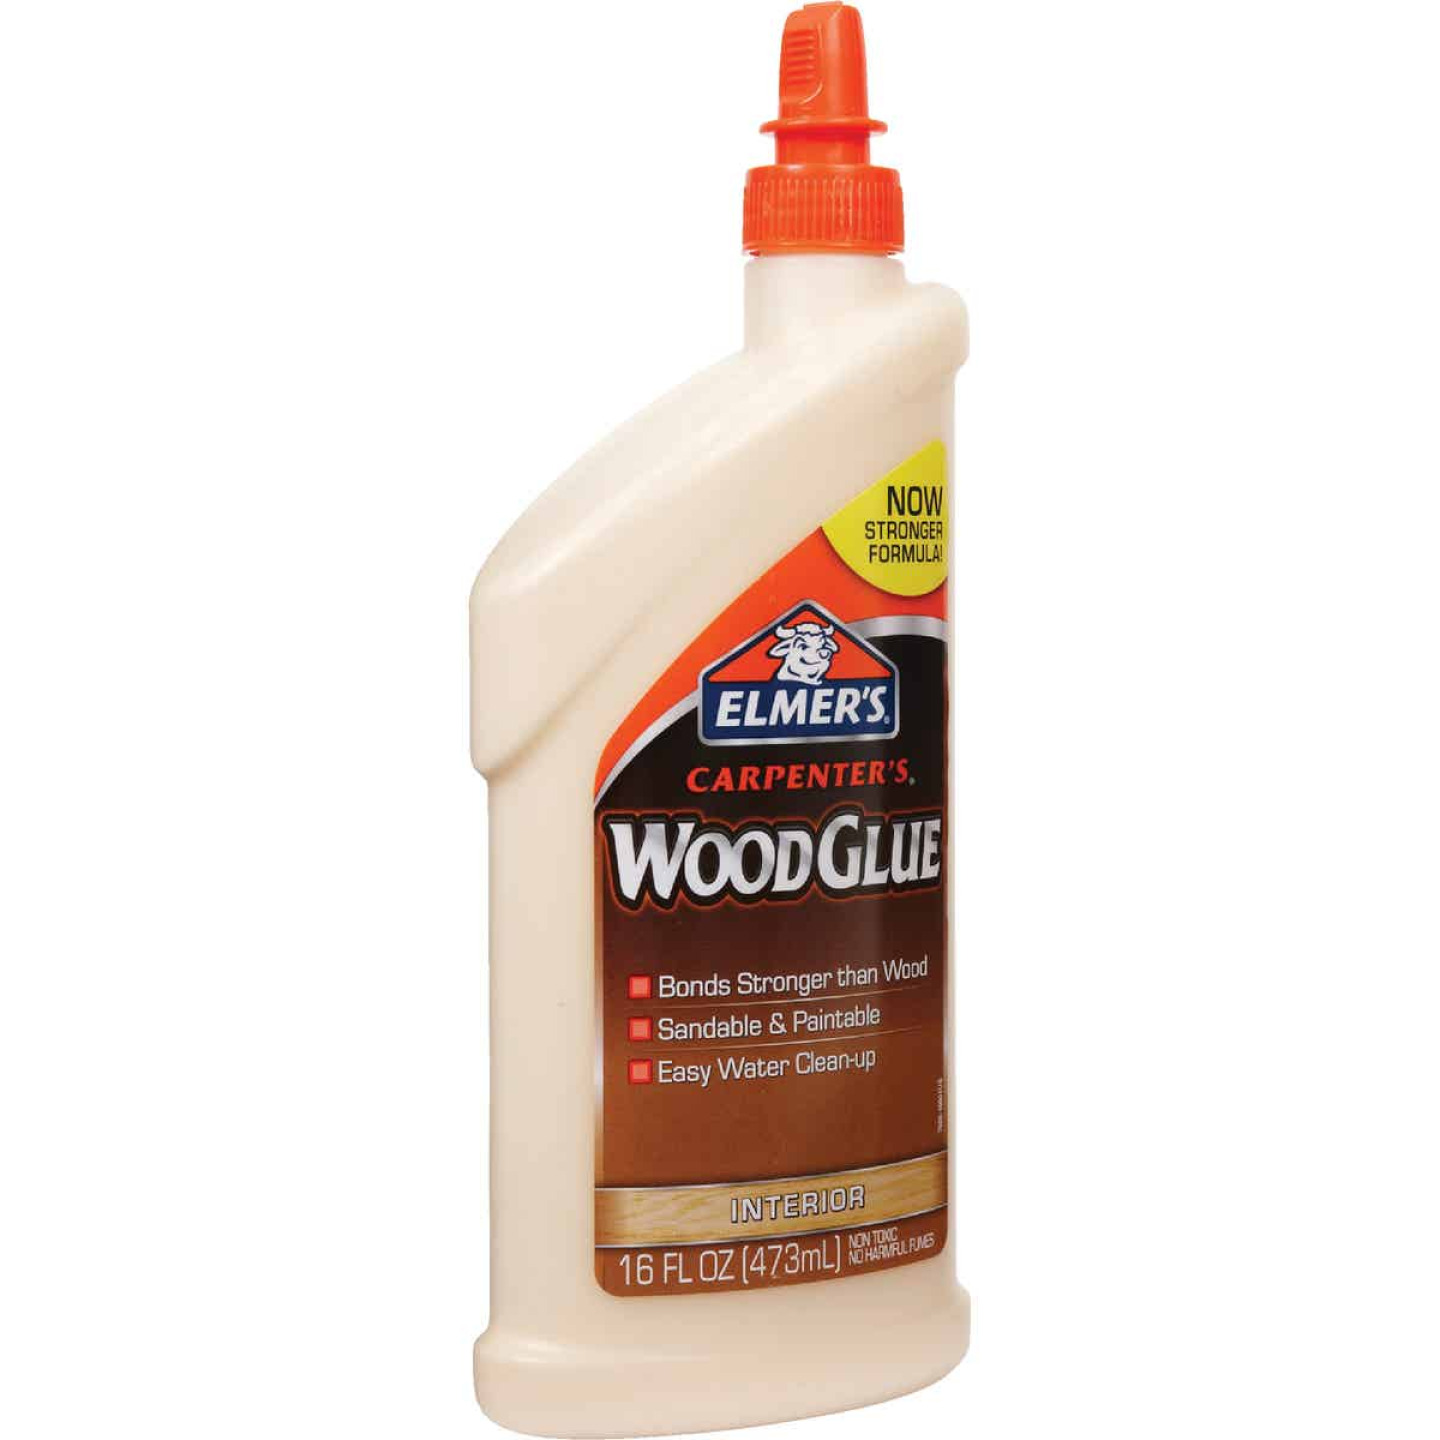 Elmer's Carpenter's 16 Oz. Wood Glue Image 2